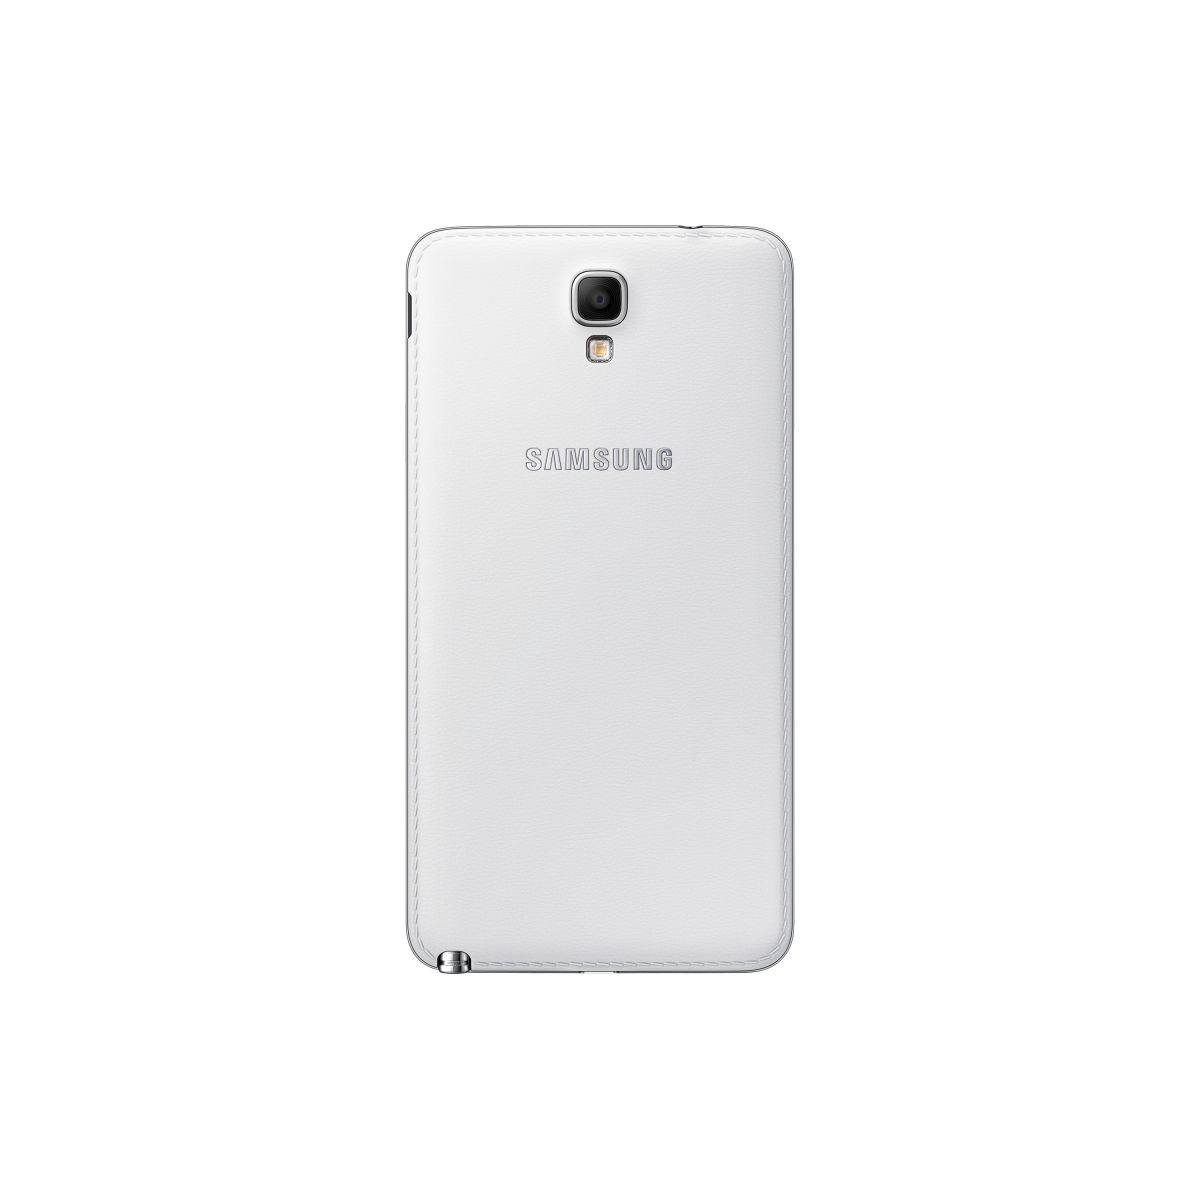 Smartphone Galaxy Note 3 Neo SM-N7502 Dual Chip, Android 4.3, Quad Core 1.6GHz, Camera 8MP, 16GB, HD Super AMOLED 5.5, Branco